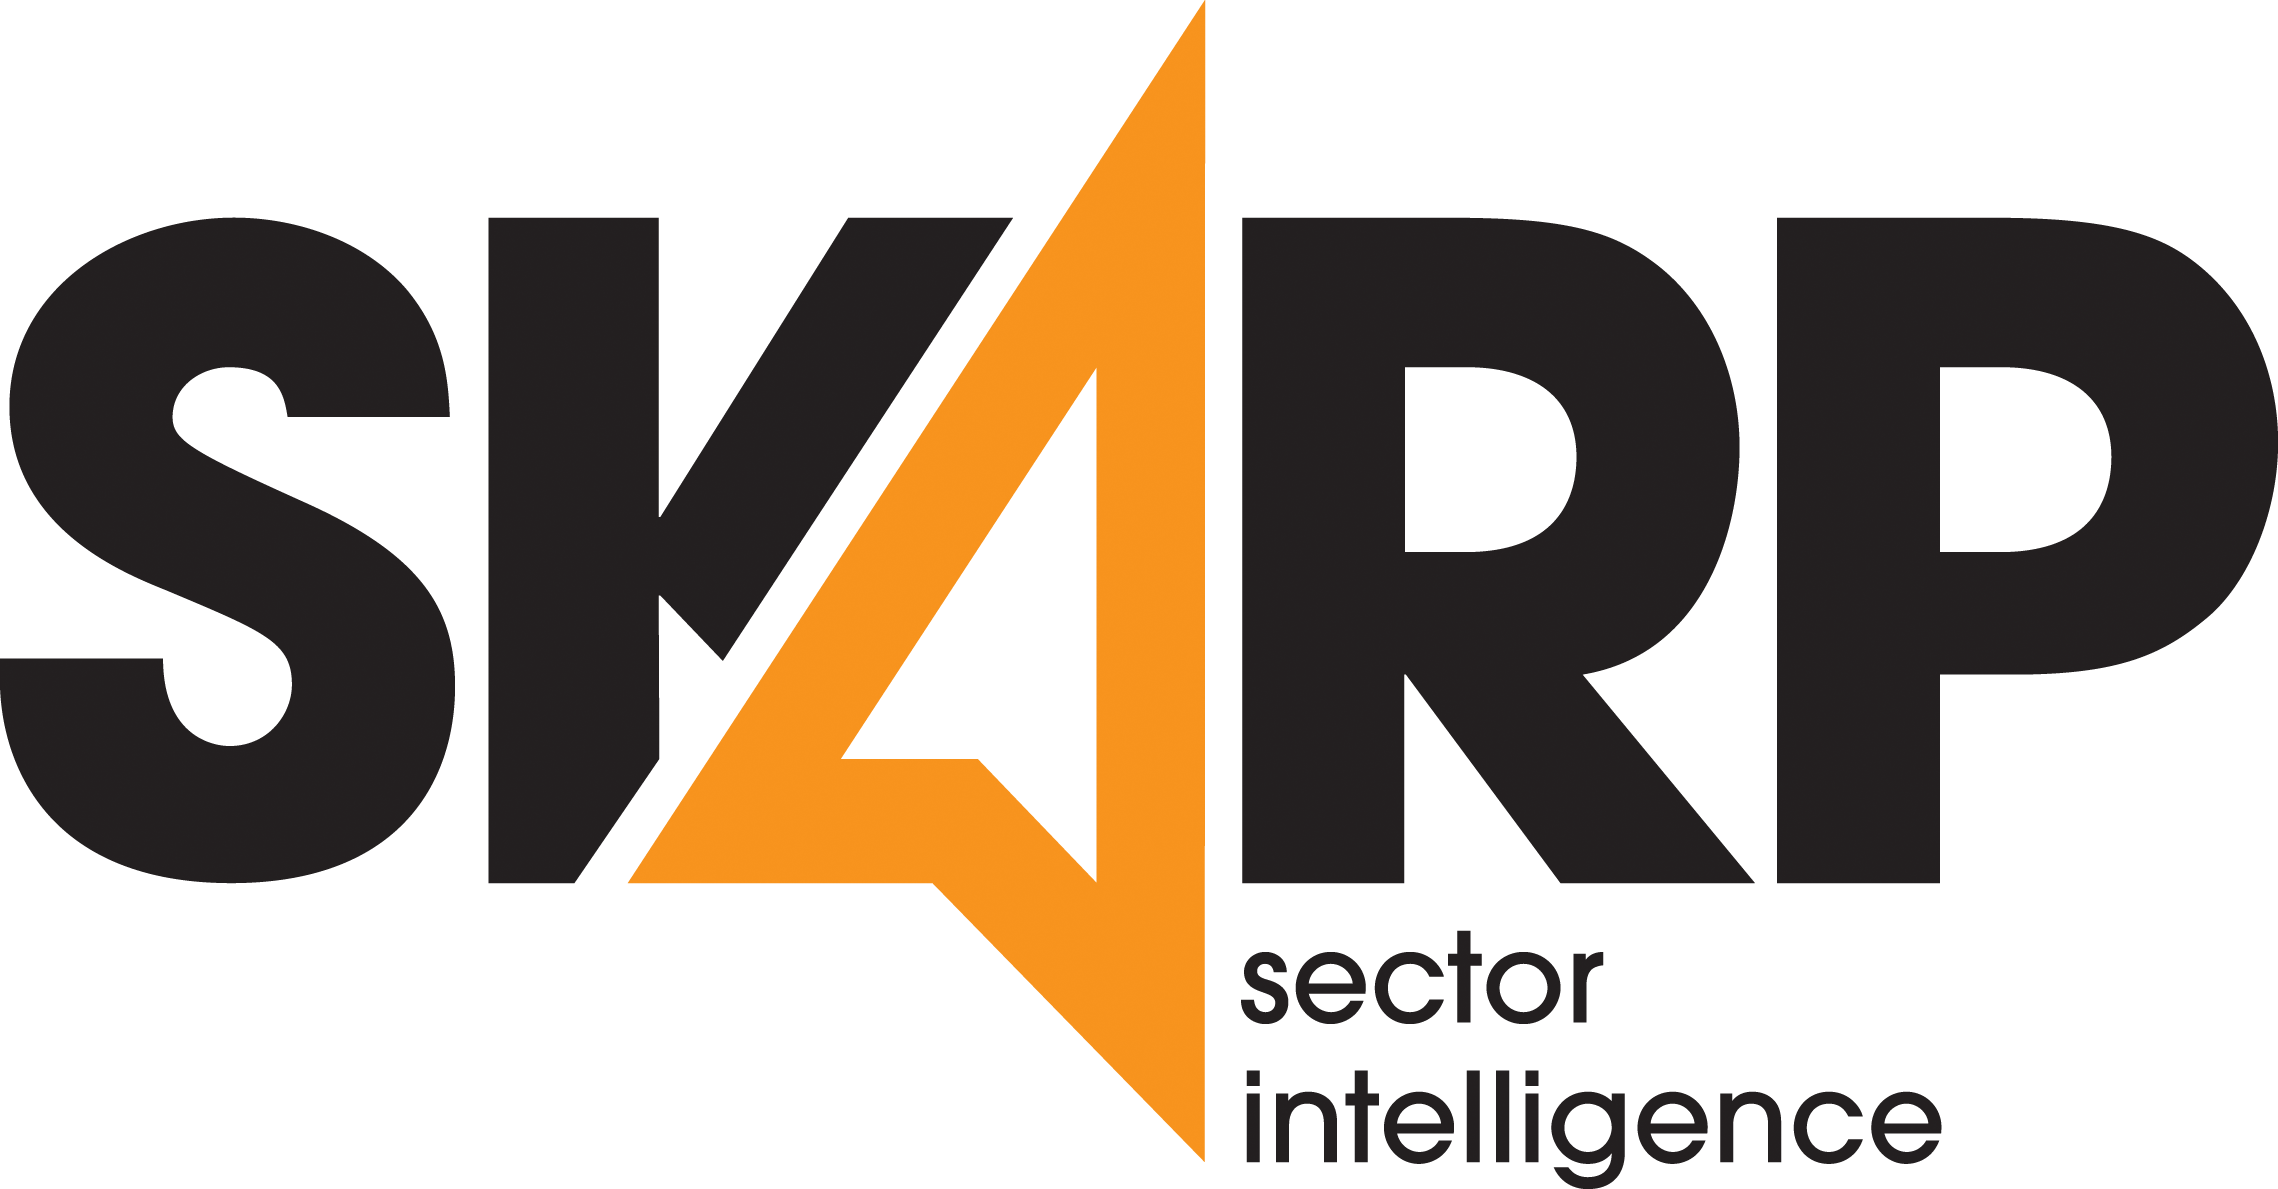 SKARP Sector Intelligence